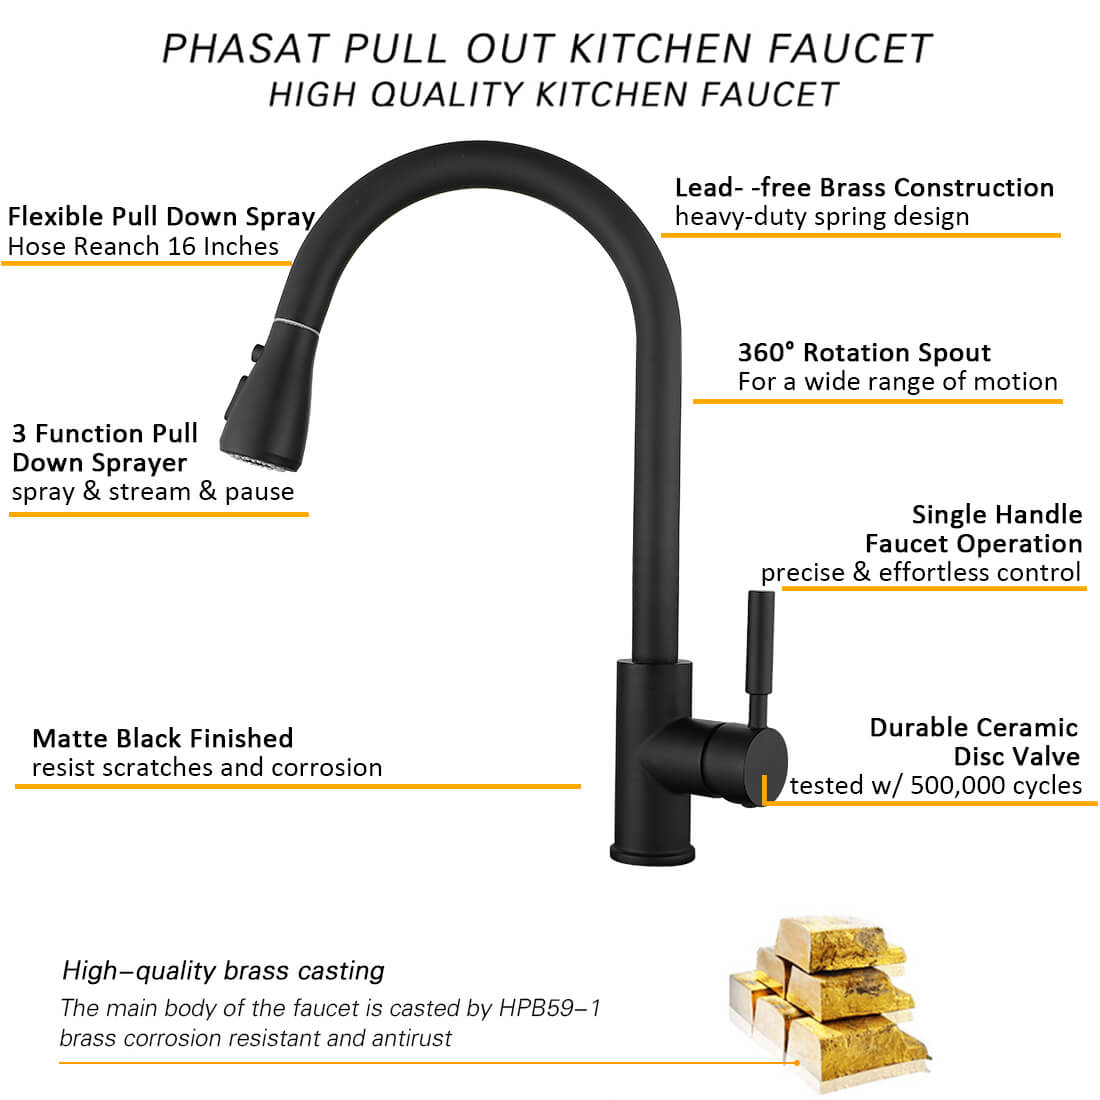 Pull Out Kitchentaps Black Brushed Nickel Kitchen Spray Tap With Cold And Hot Mixed Water Deck Mounted Phasat